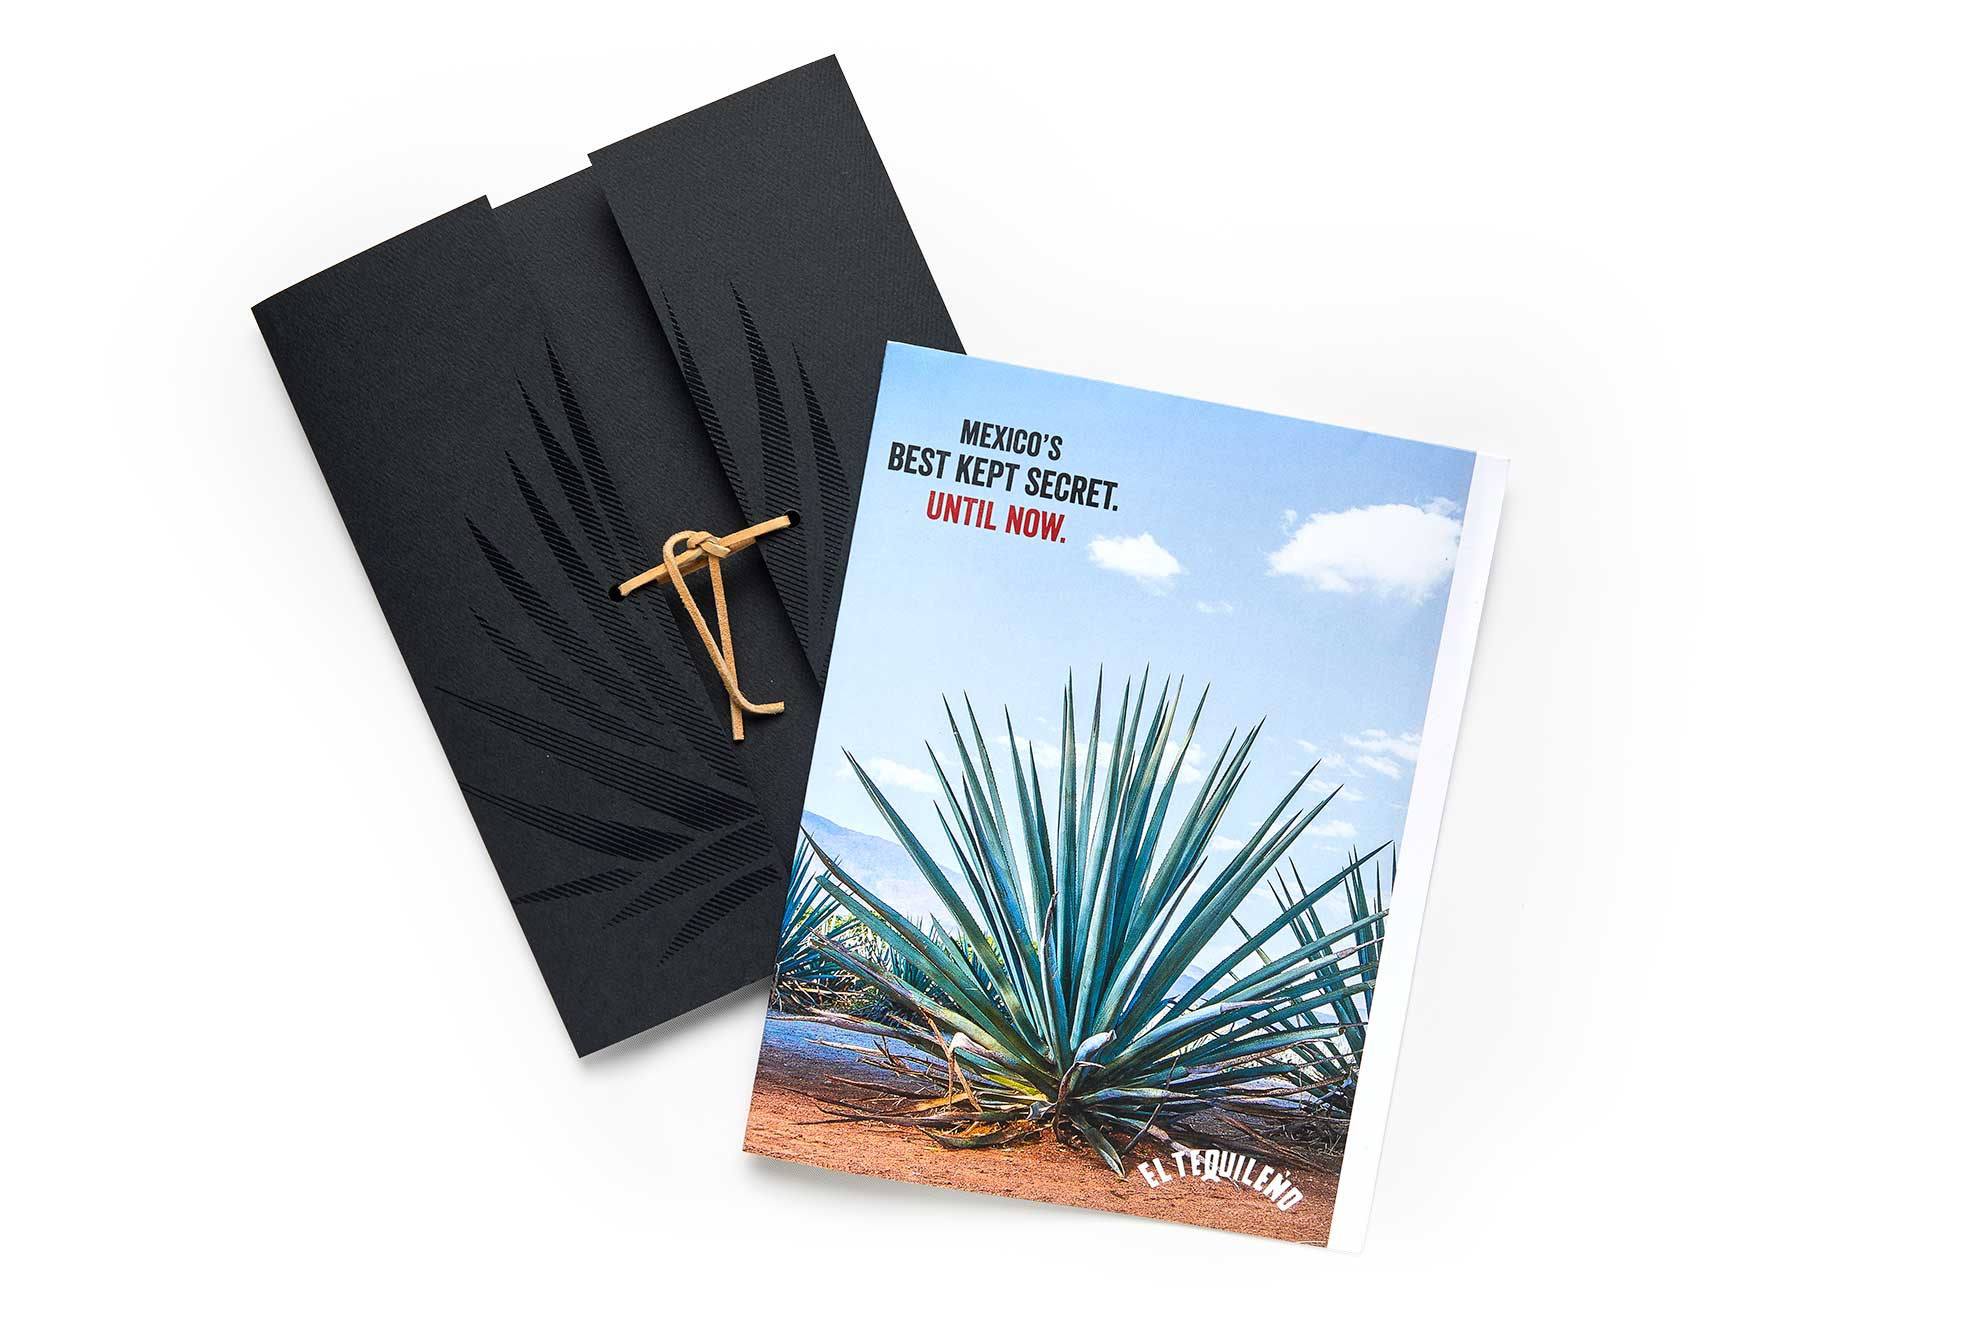 El Tequileno Promotional Material